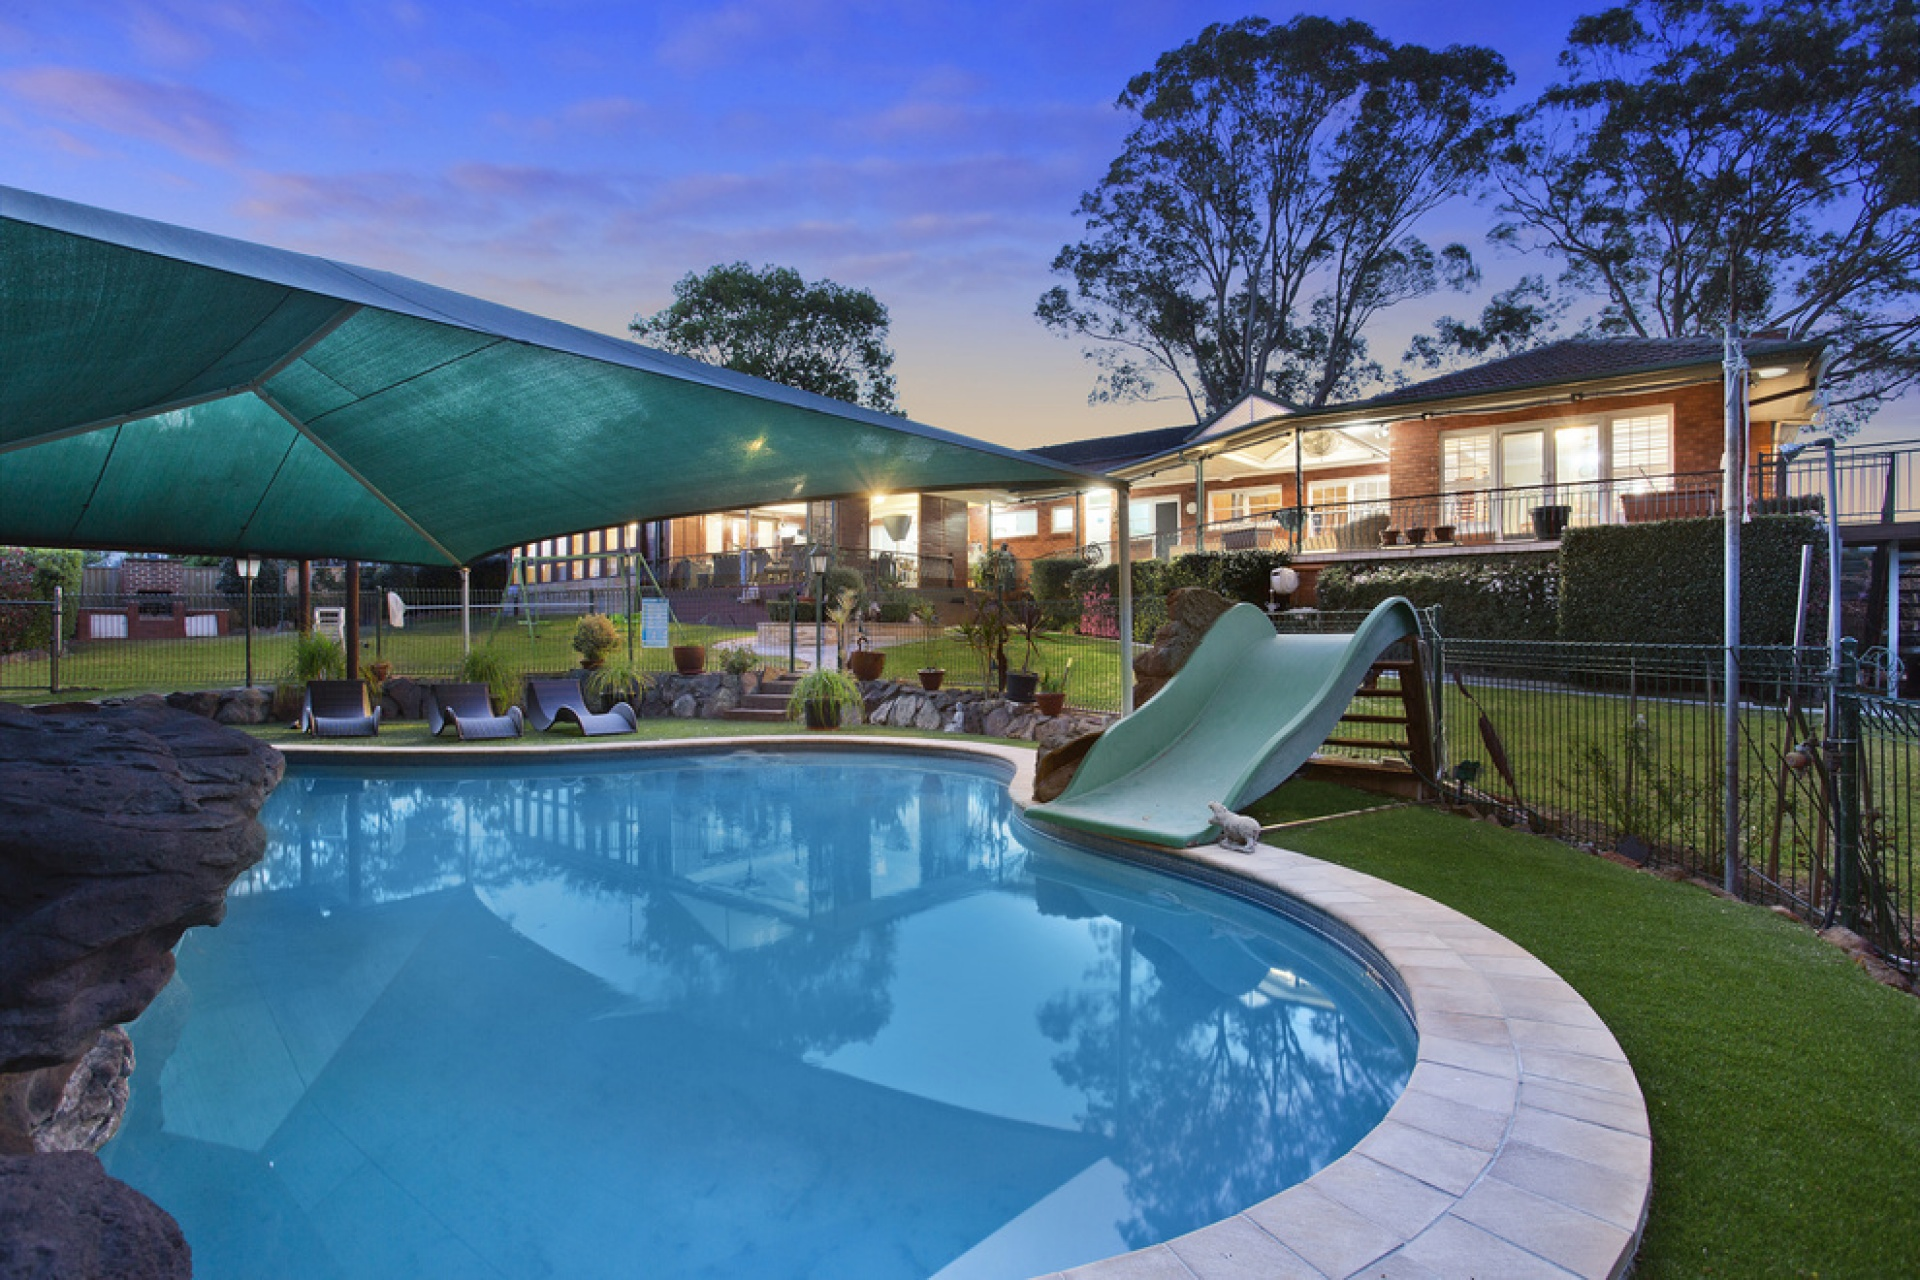 5 Rooms, House, Sold , Kings Road, 3 Bathrooms, Listing ID 1179, Castle Hill, NSW, Australia,